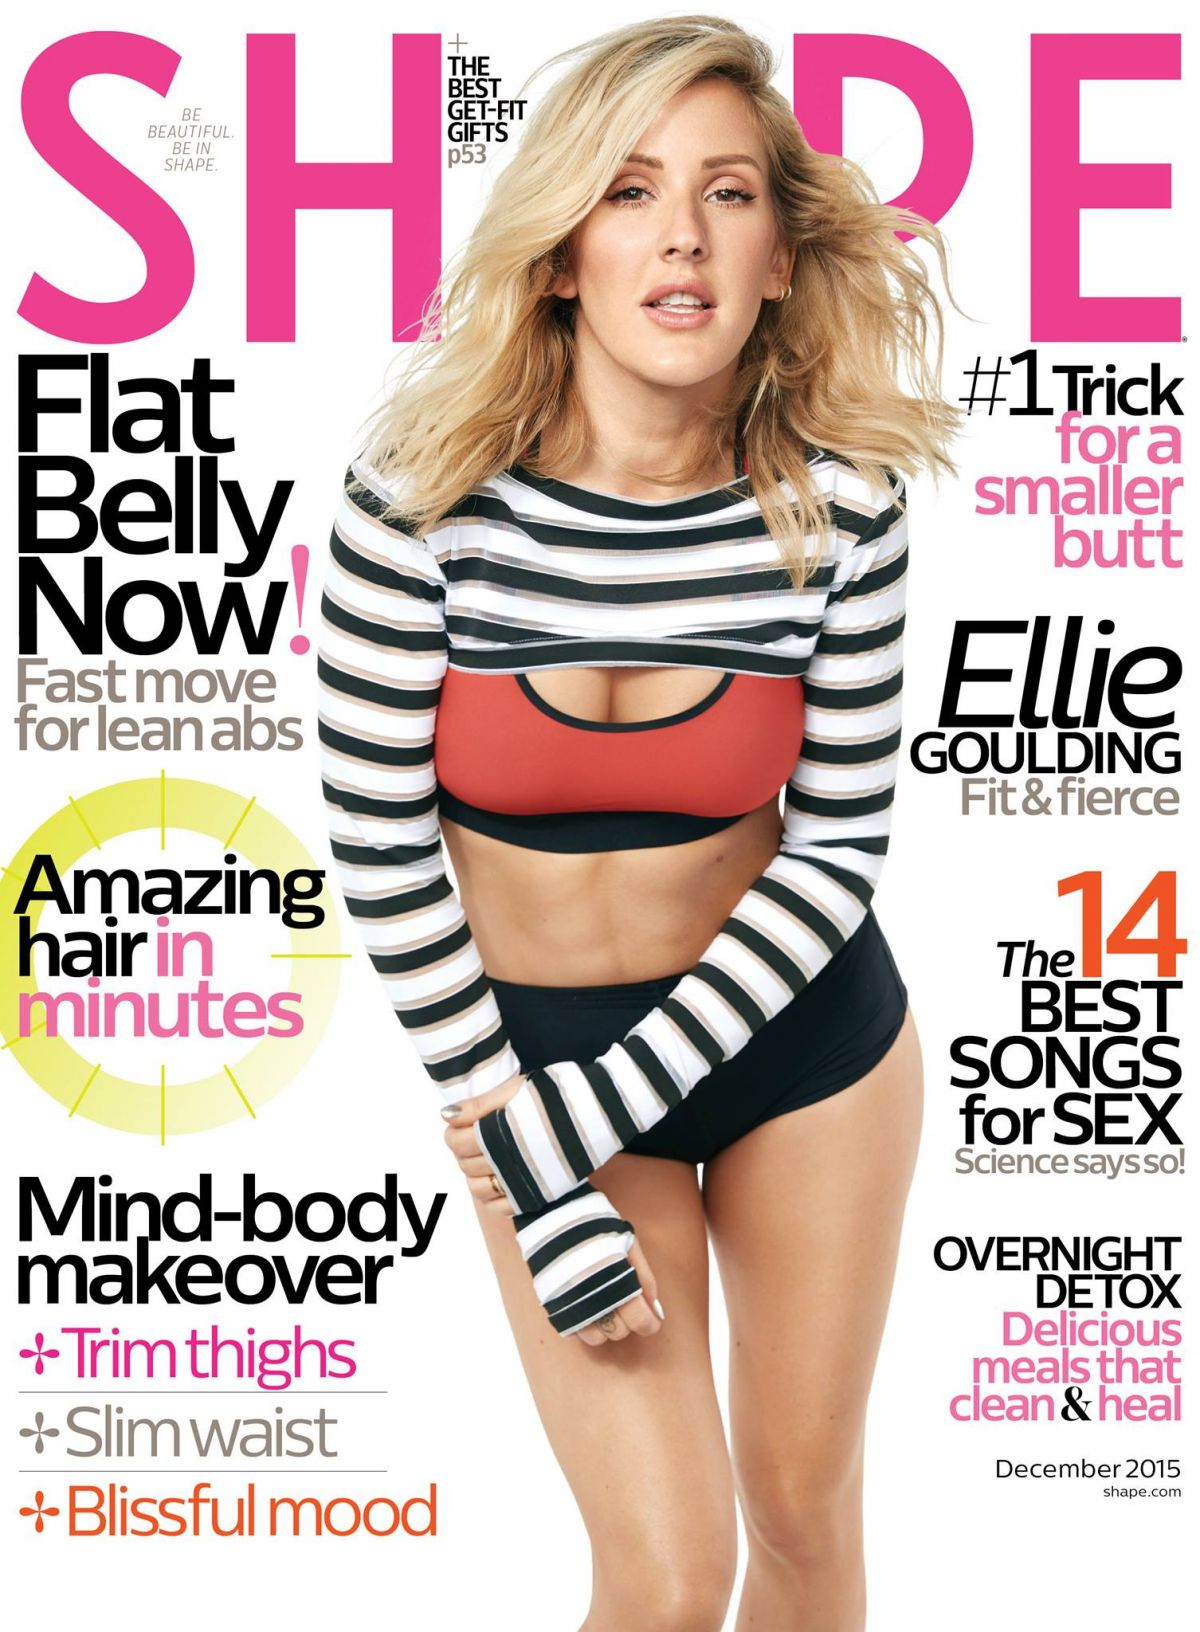 ELLIE GOULDING in Shape Magazine, December 2015 Issue